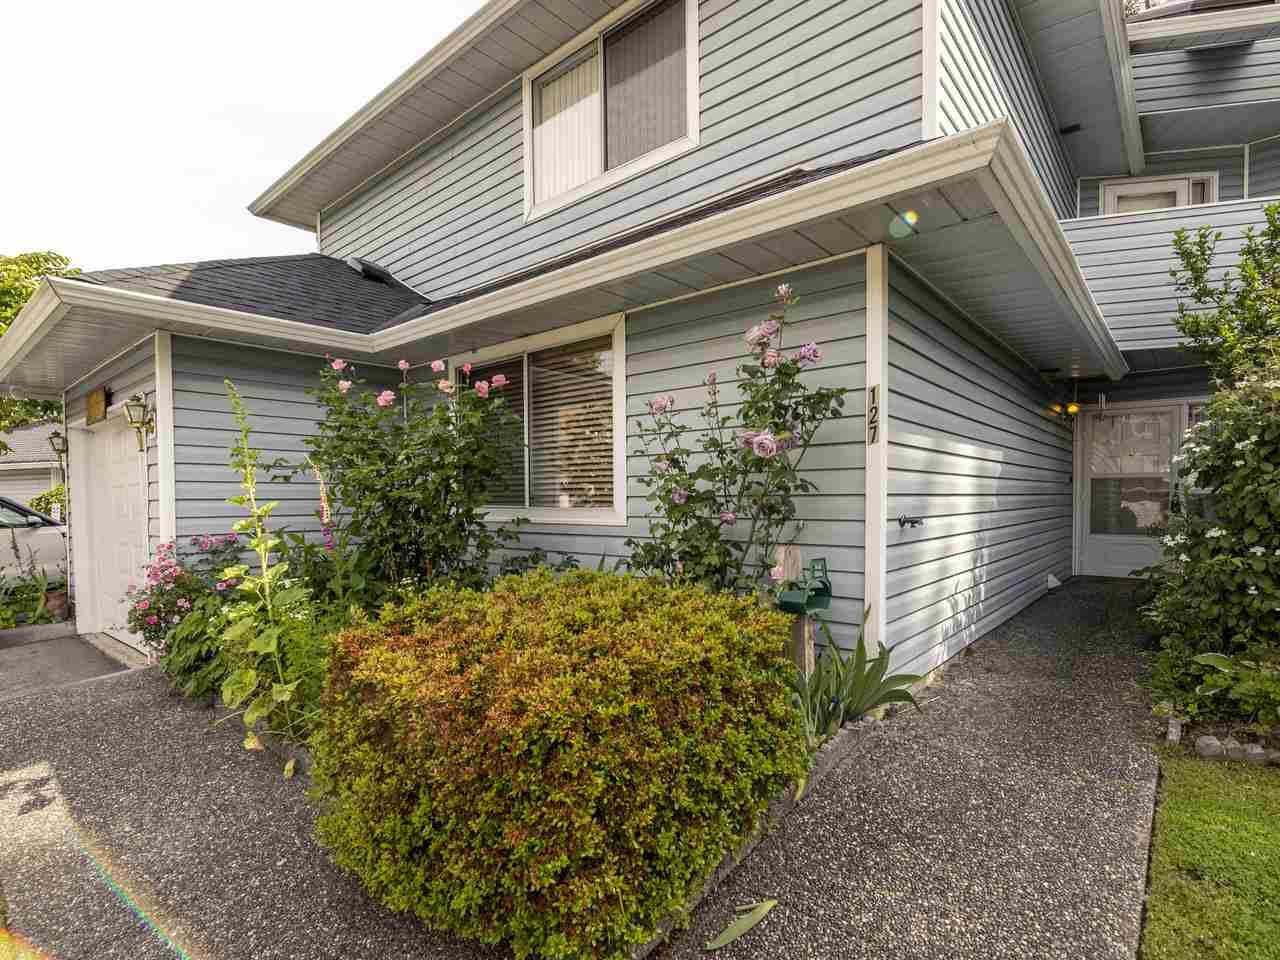 """Photo 2: Photos: 127 22555 116 Avenue in Maple Ridge: East Central Townhouse for sale in """"HILLSIDE"""" : MLS®# R2493046"""